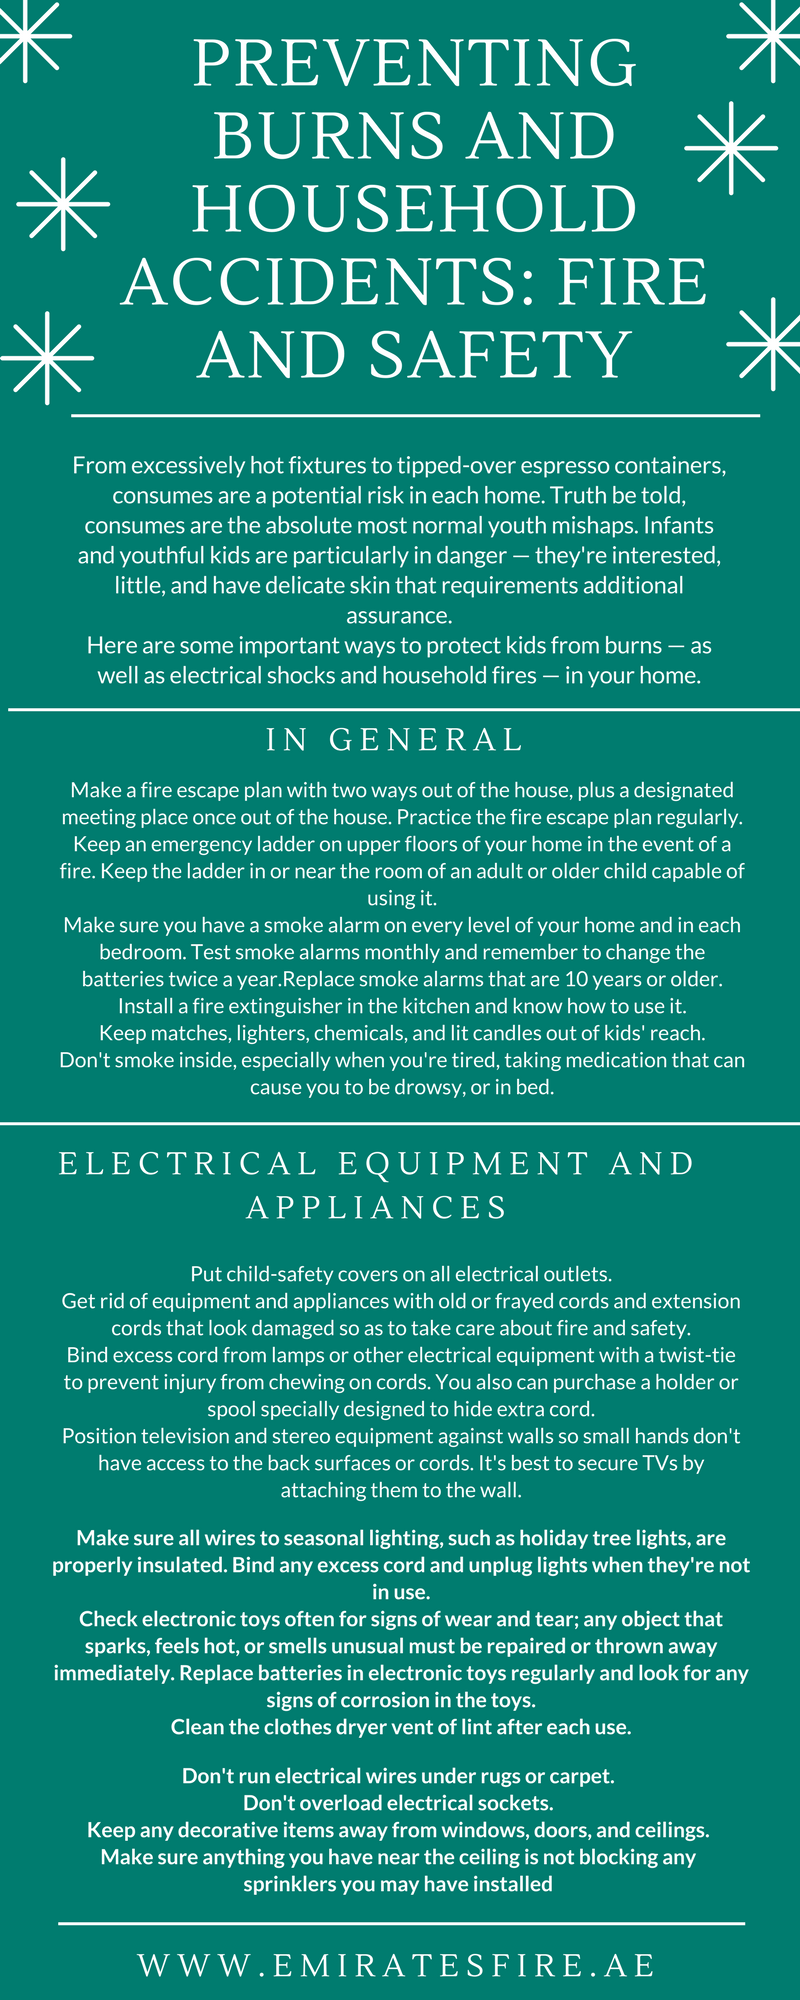 From Excessively Hot Fixtures To Tipped Over Espresso Containers Discuss About Home Wiring Hazards And Electrical Dangers In Your Consumes Are A Potential Risk Each Truth Be Told The Absolute Most